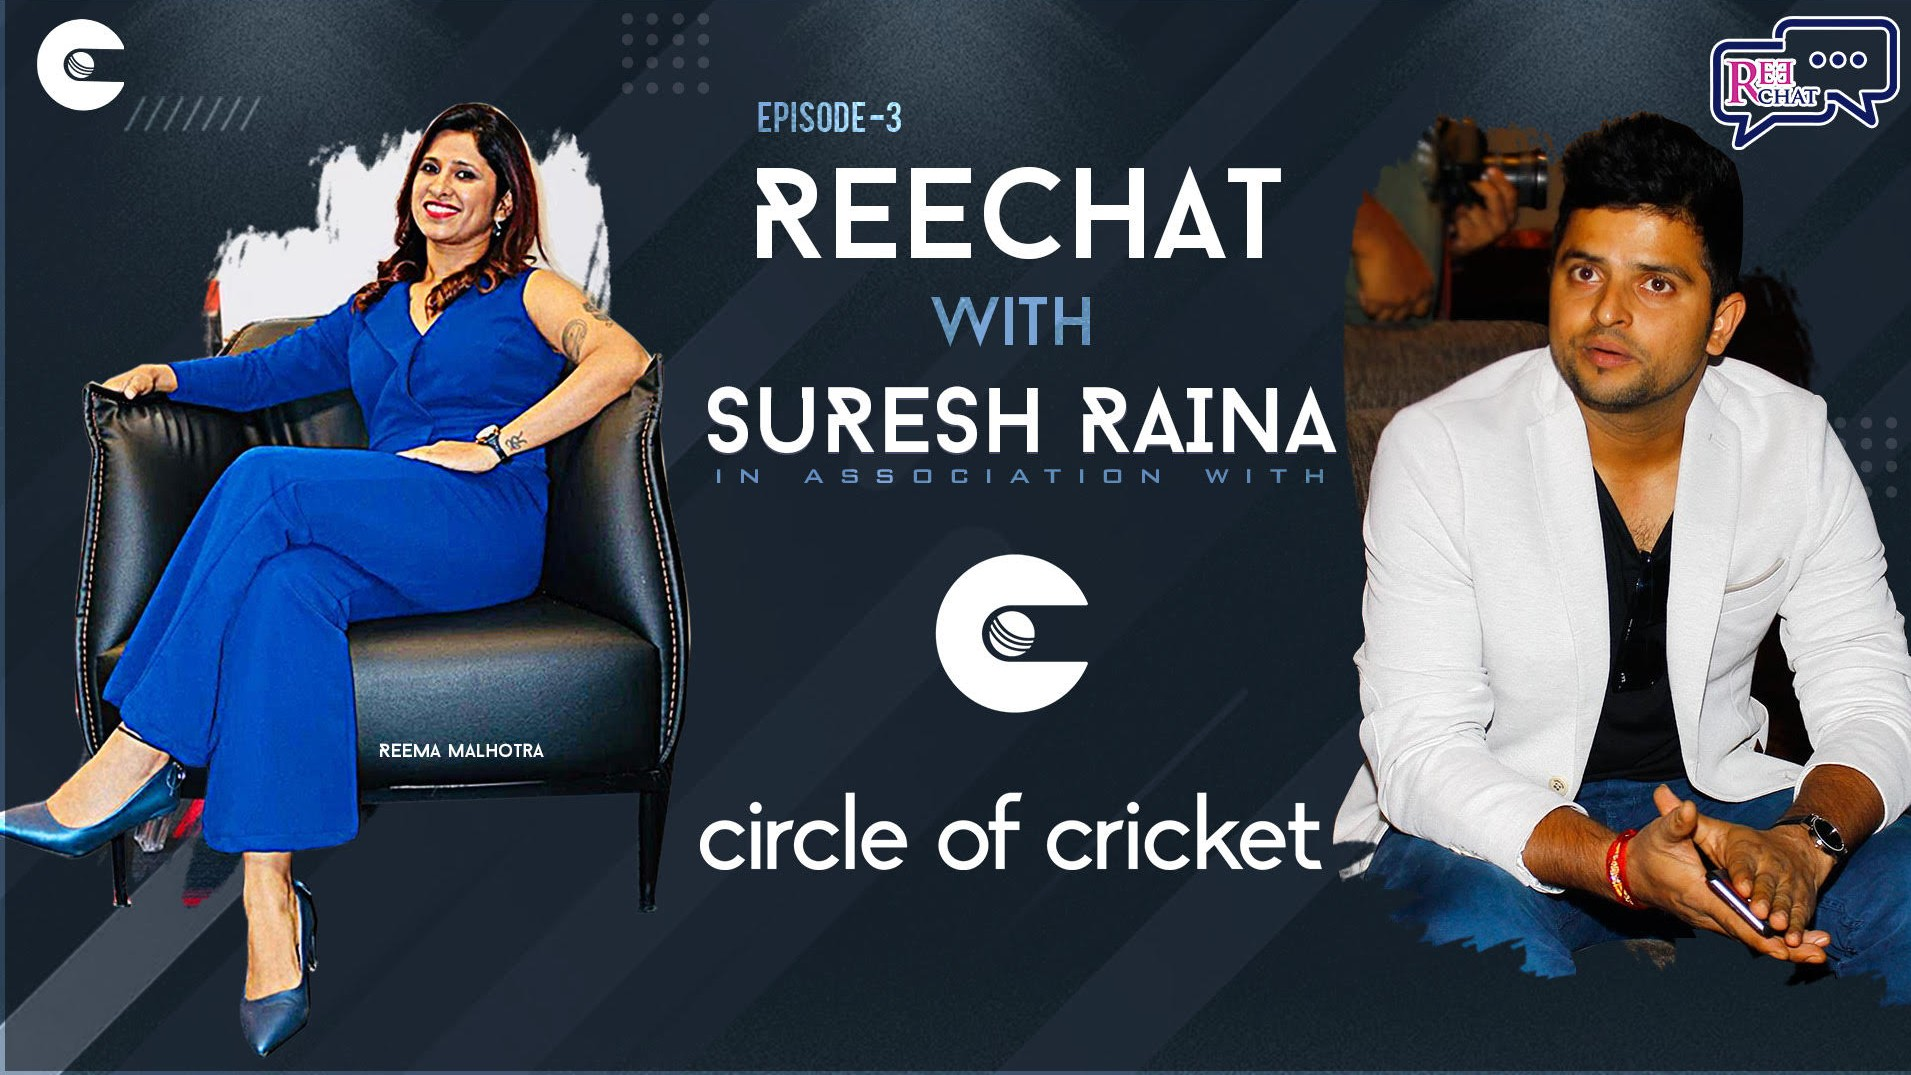 Exclusive: Circle of Cricket presents REECHAT hosted by Reema Malhotra; Episode 3 feat. Suresh Raina